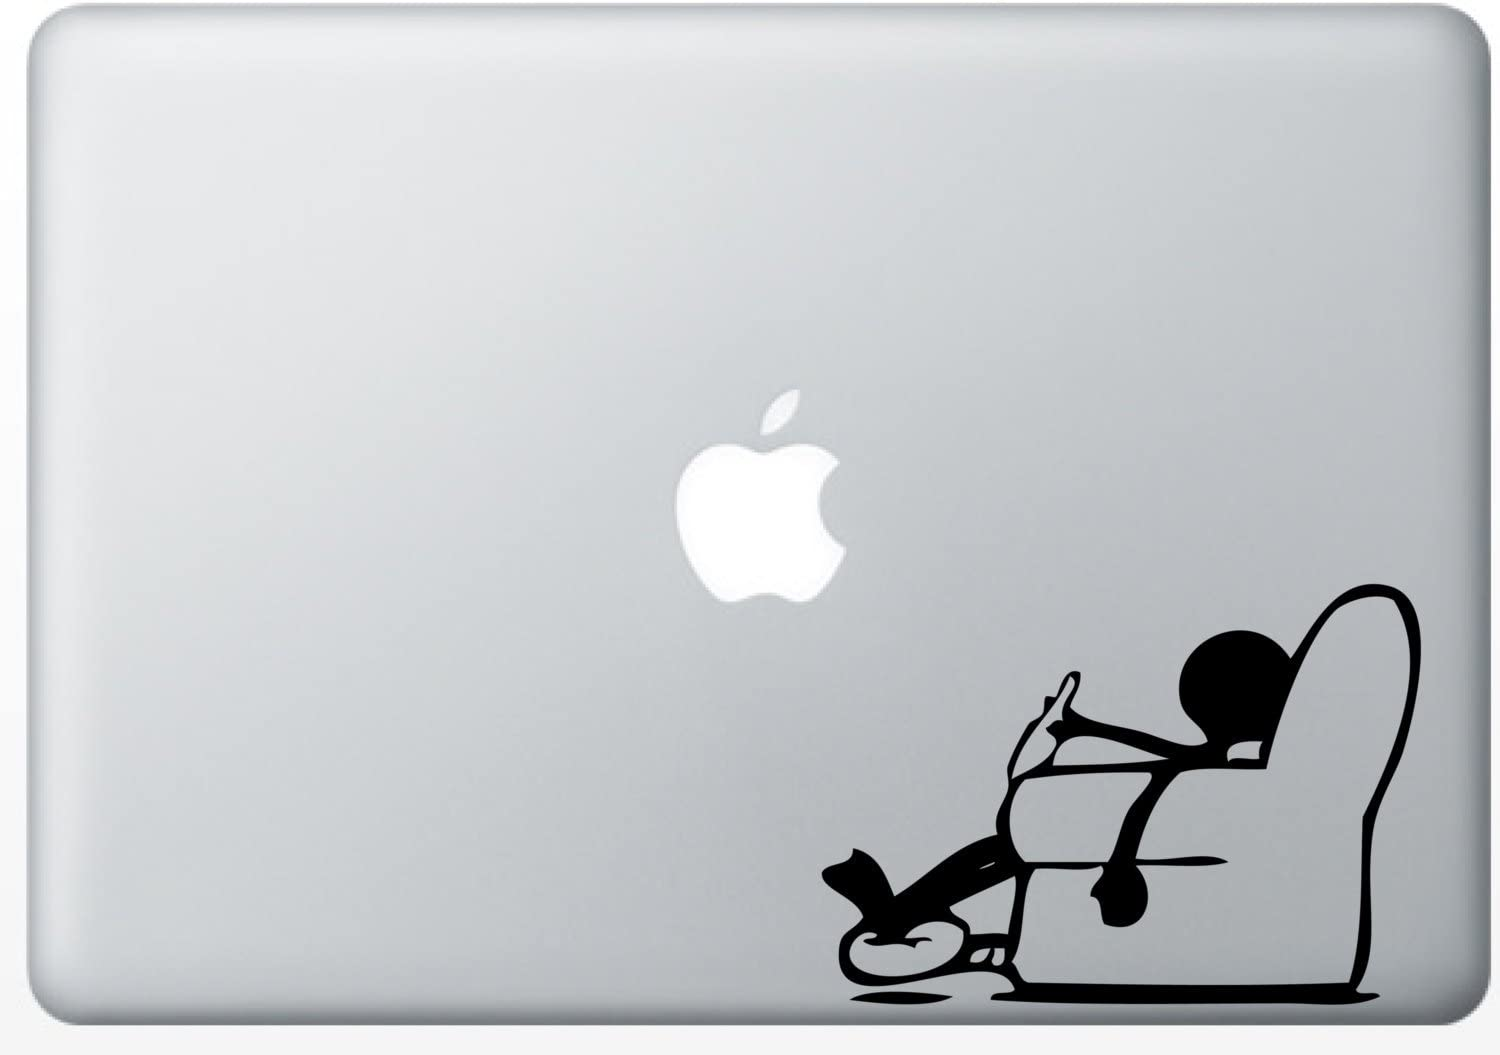 Stickman Lazy Slouched on Couch Drinking Relax Humor Silhouette Macbook Symbol Keypad Iphone Apple Ipad Decal Skin Sticker Laptop